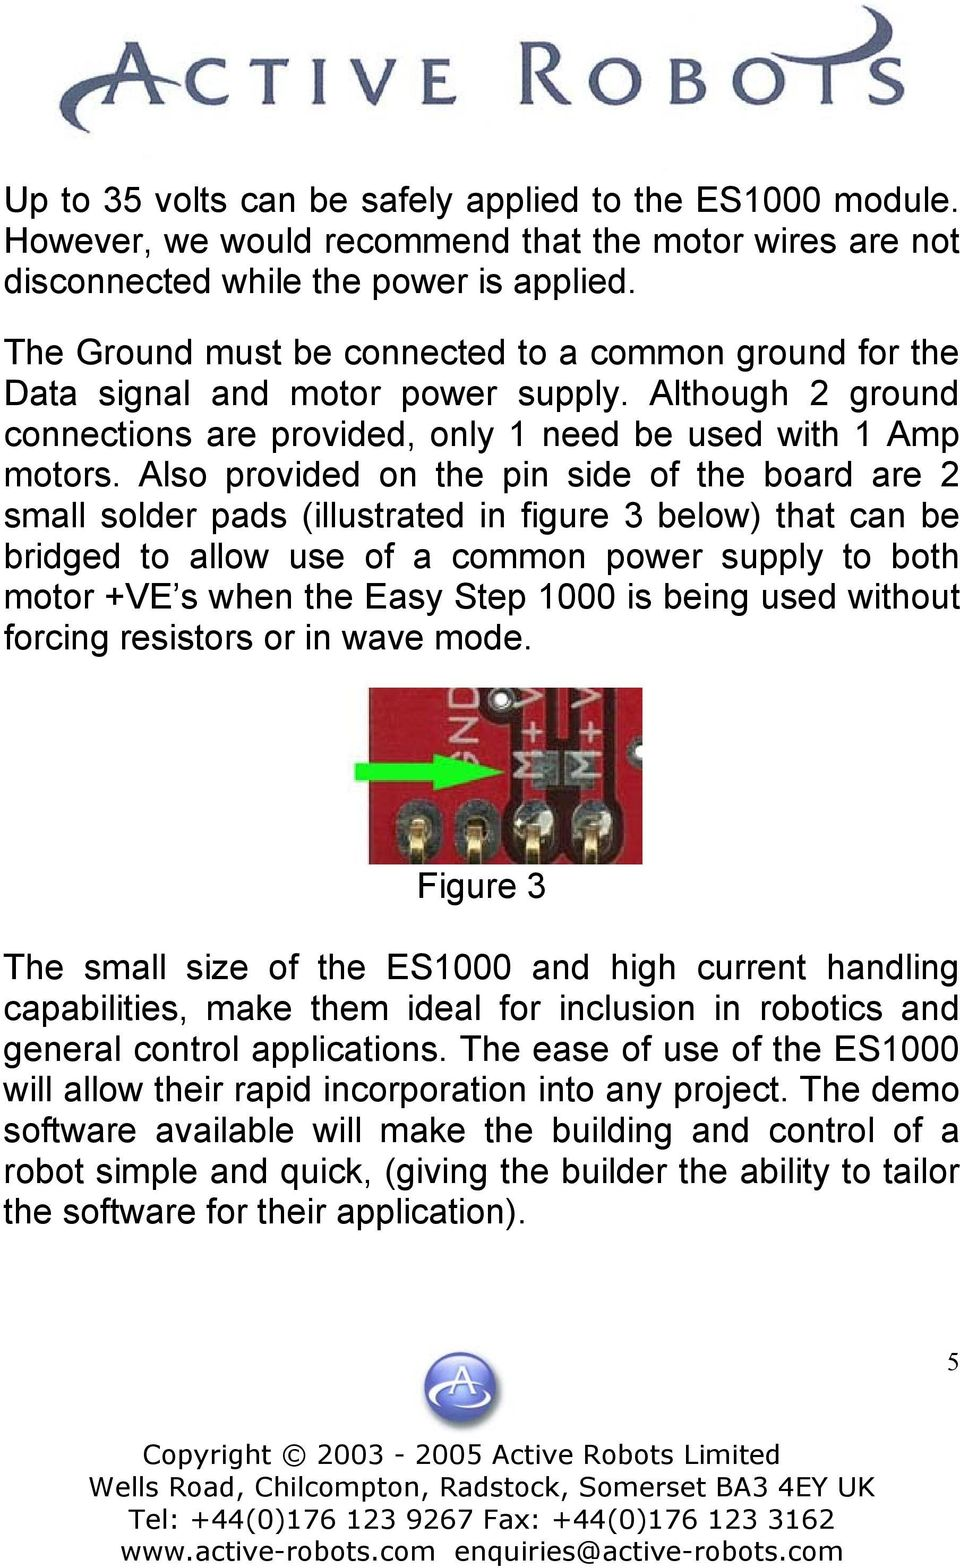 Also provided on the pin side of the board are 2 small solder pads (illustrated in figure 3 below) that can be bridged to allow use of a common power supply to both motor +VE s when the Easy Step